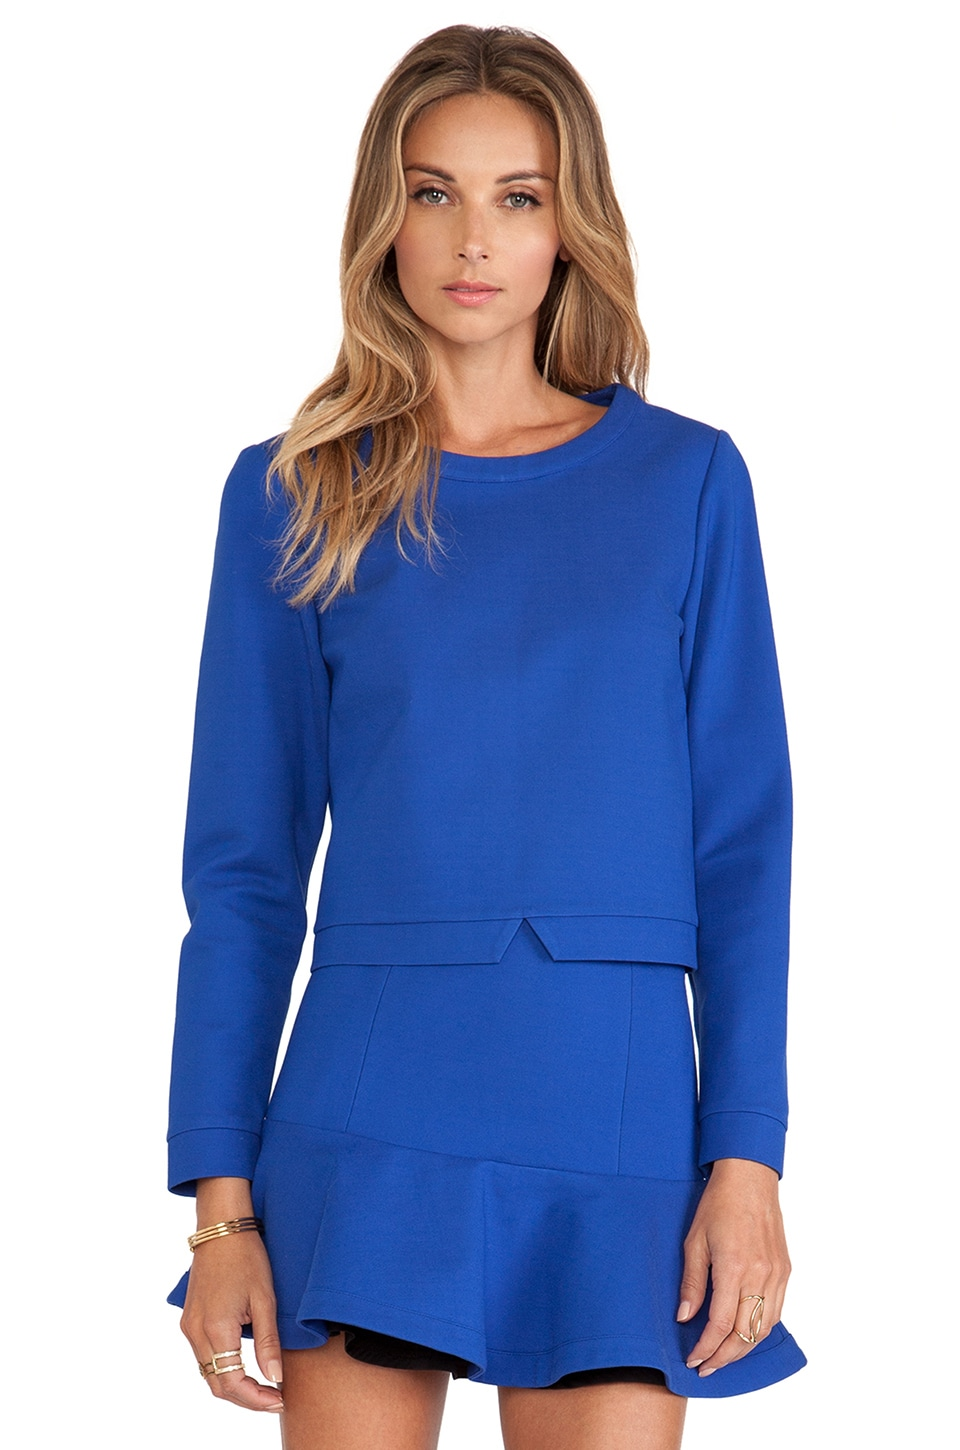 harlyn The Gala Pullover in Blue